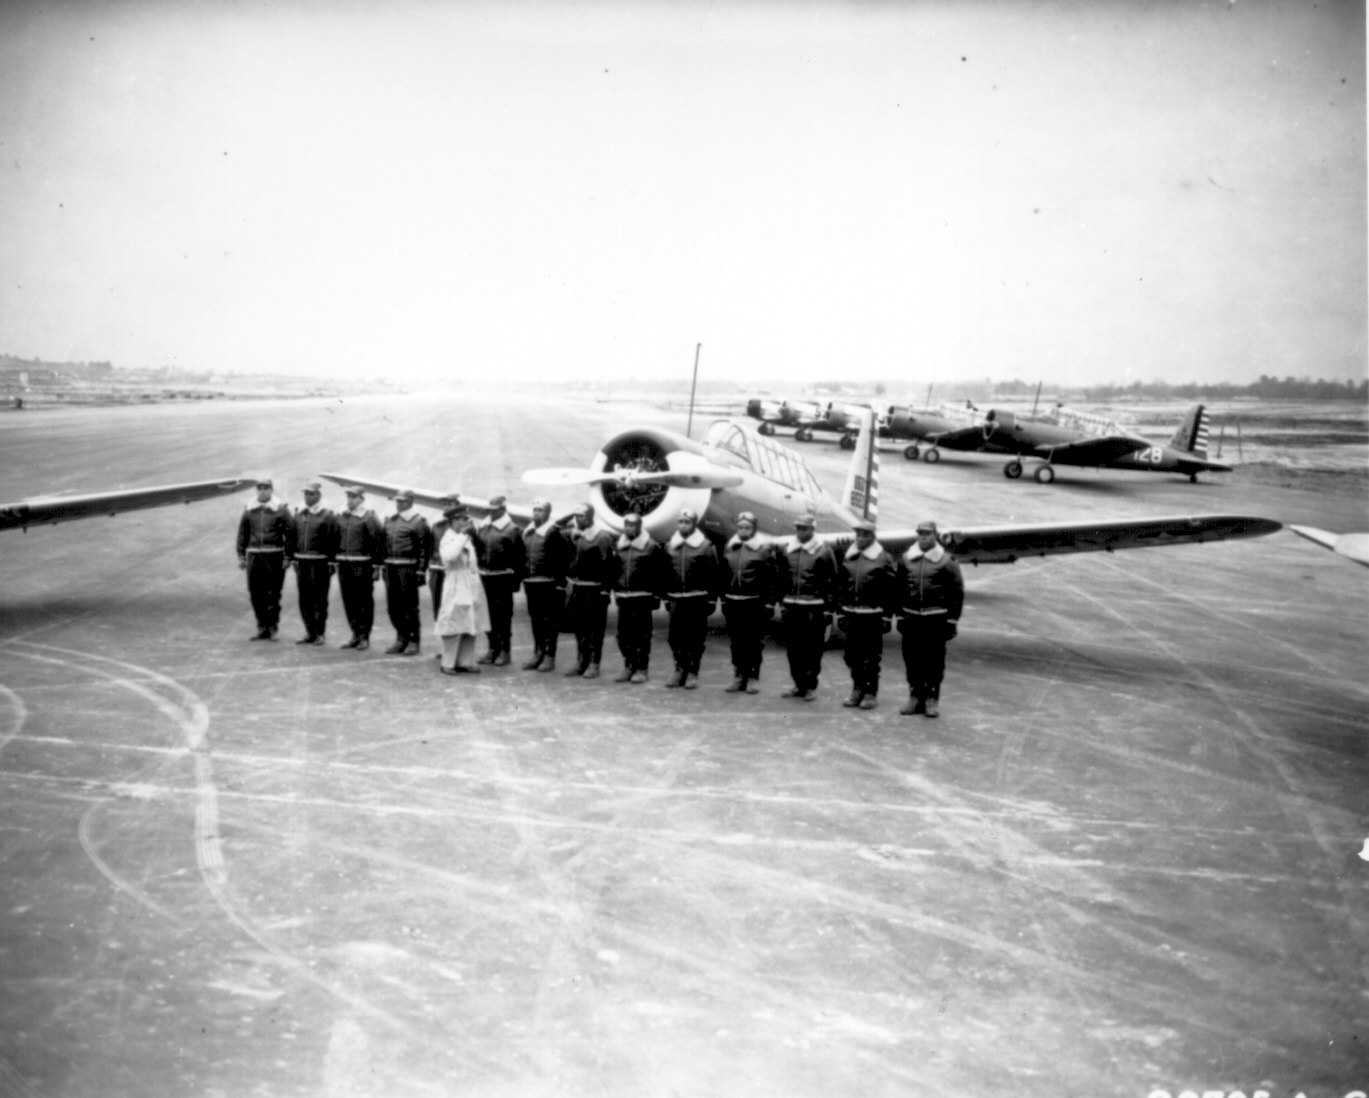 the tuskegee airman and its role during during wwii